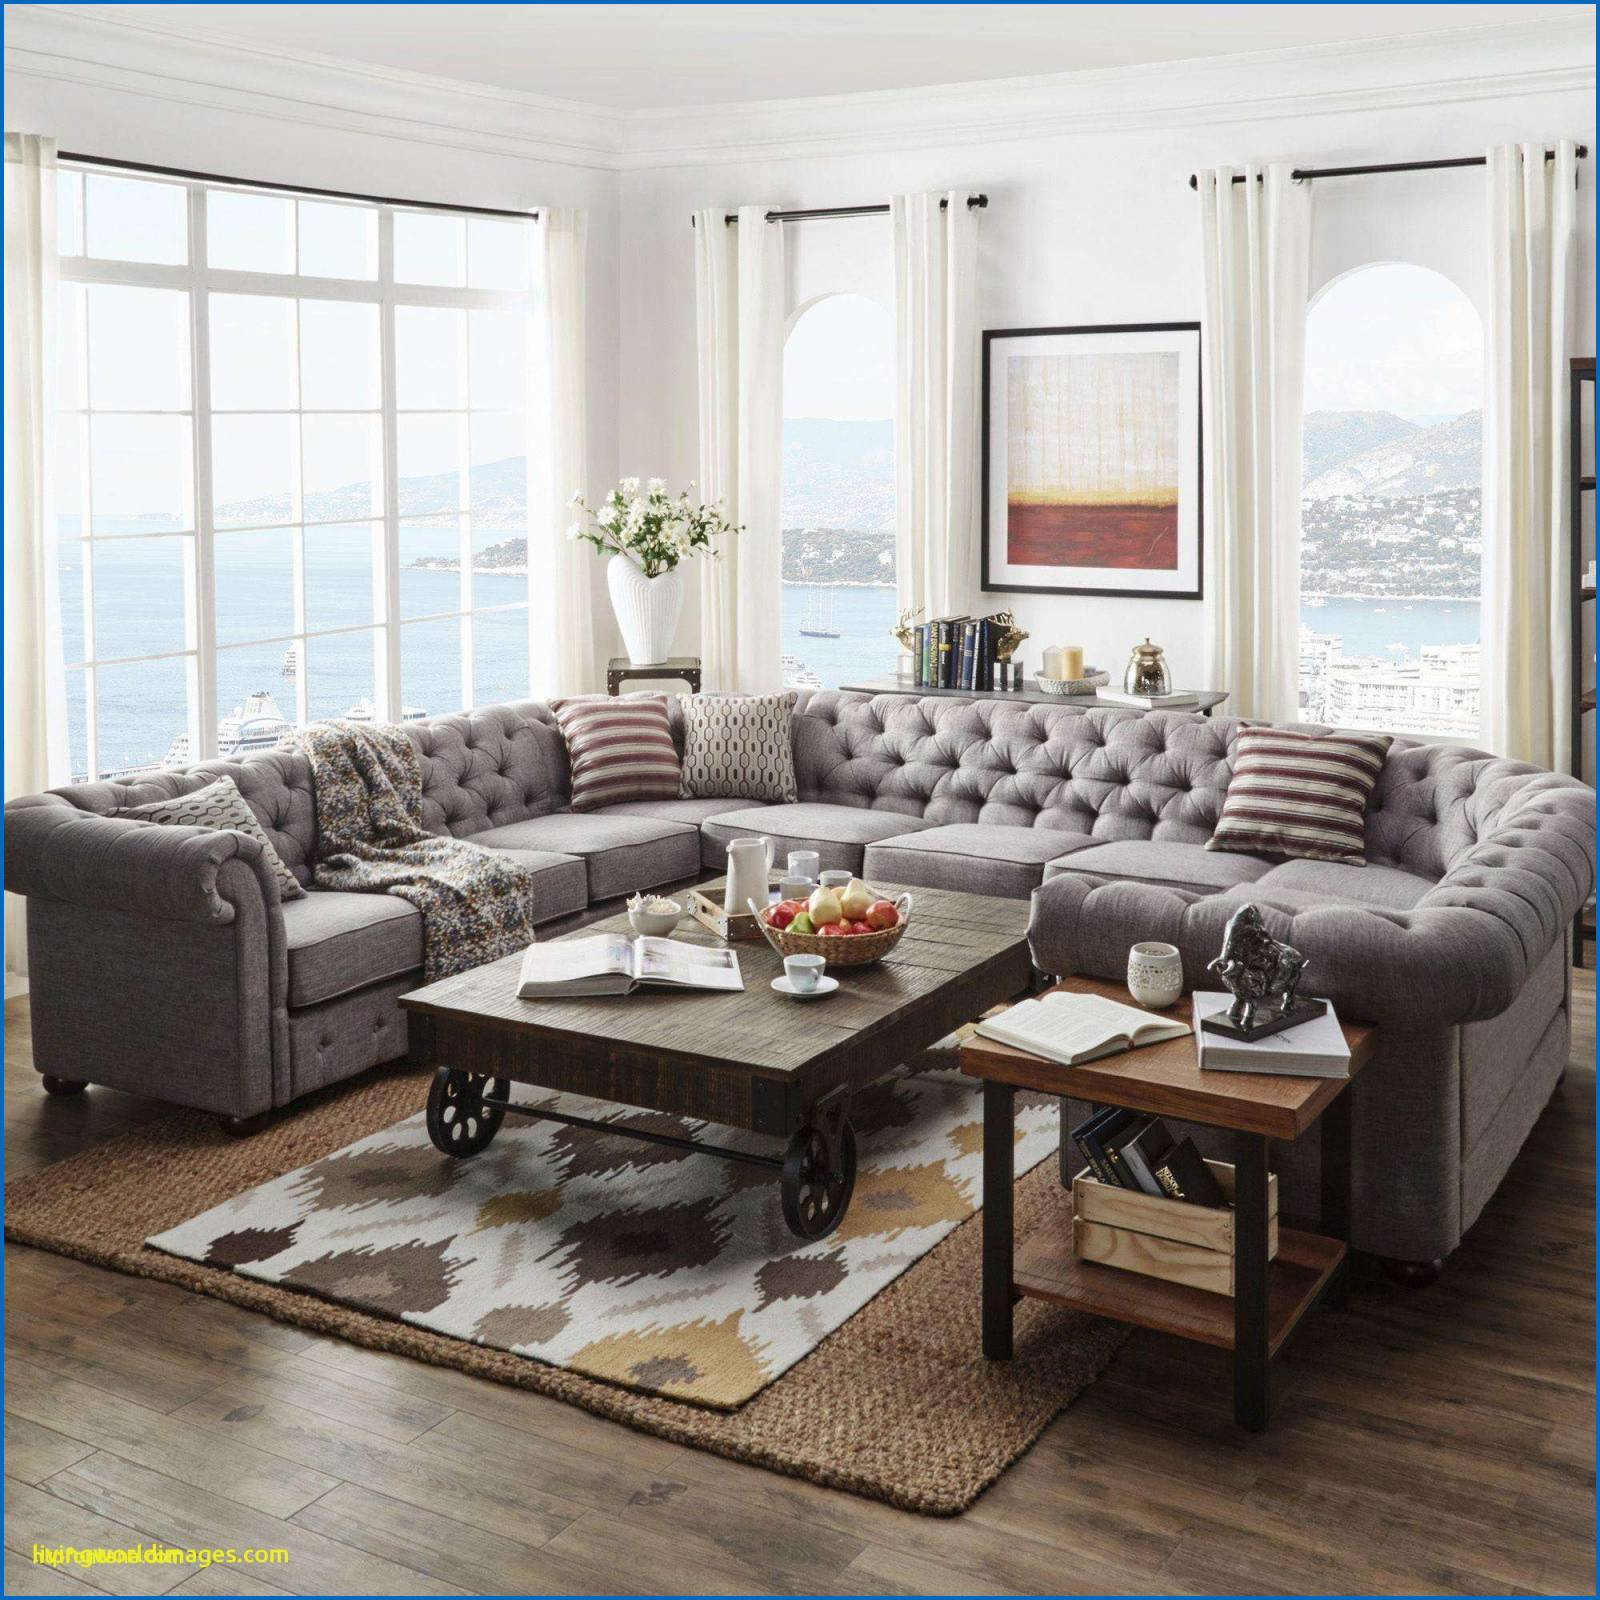 Cheap Living Room Sets Under 300 New Glamorous Dining Room Sets intended for Living Room Sets Under 300